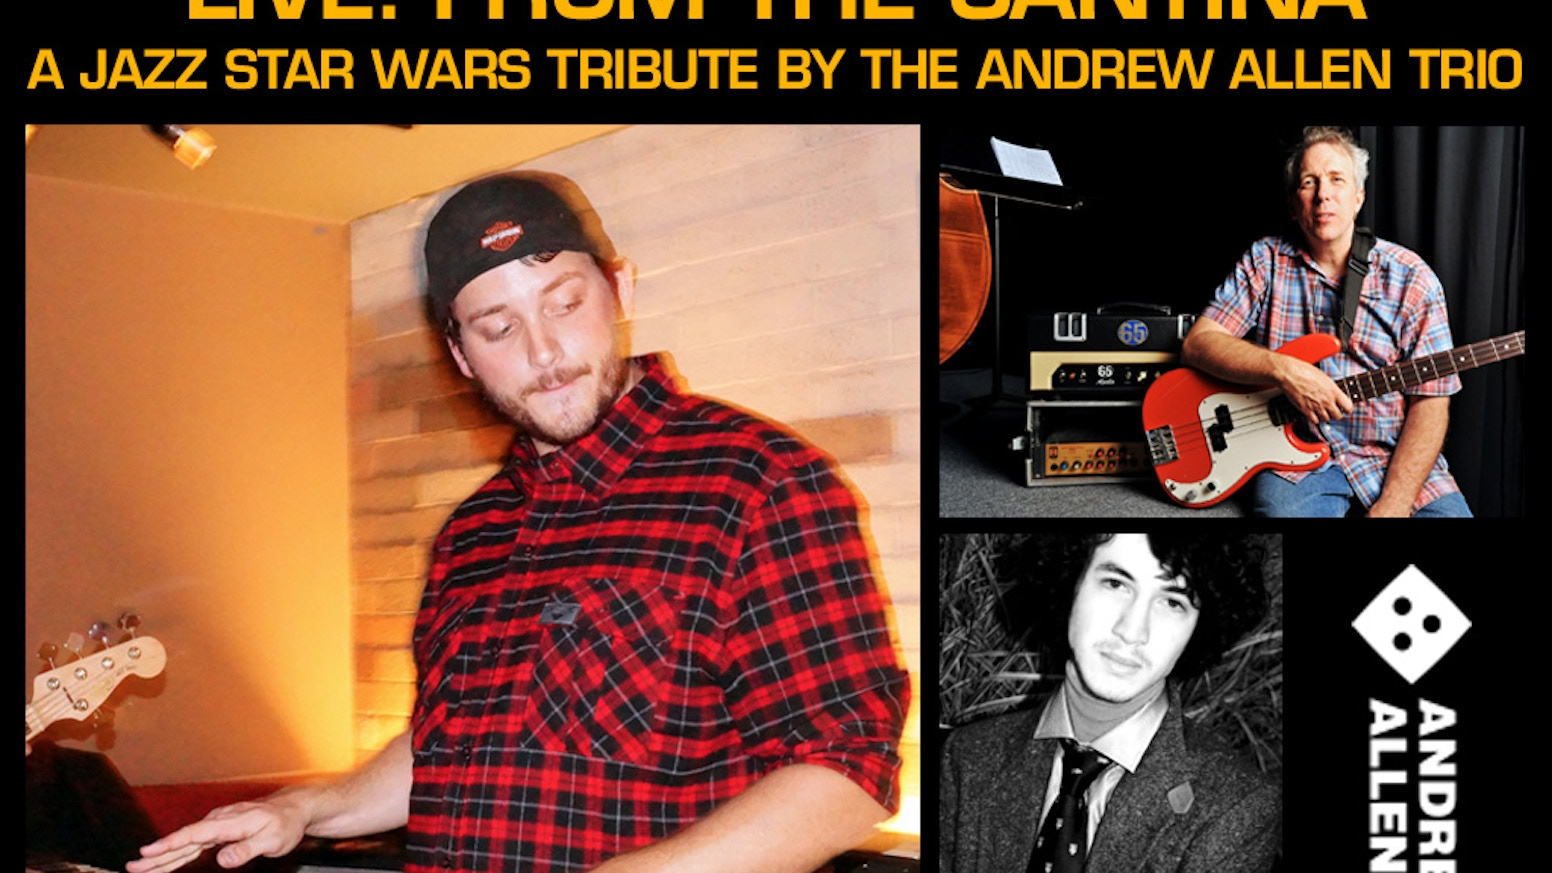 The Andrew Allen Trio is following up their popular Star Trek, Video Game and Superhero CDs with a tribute to the music of Star Wars!